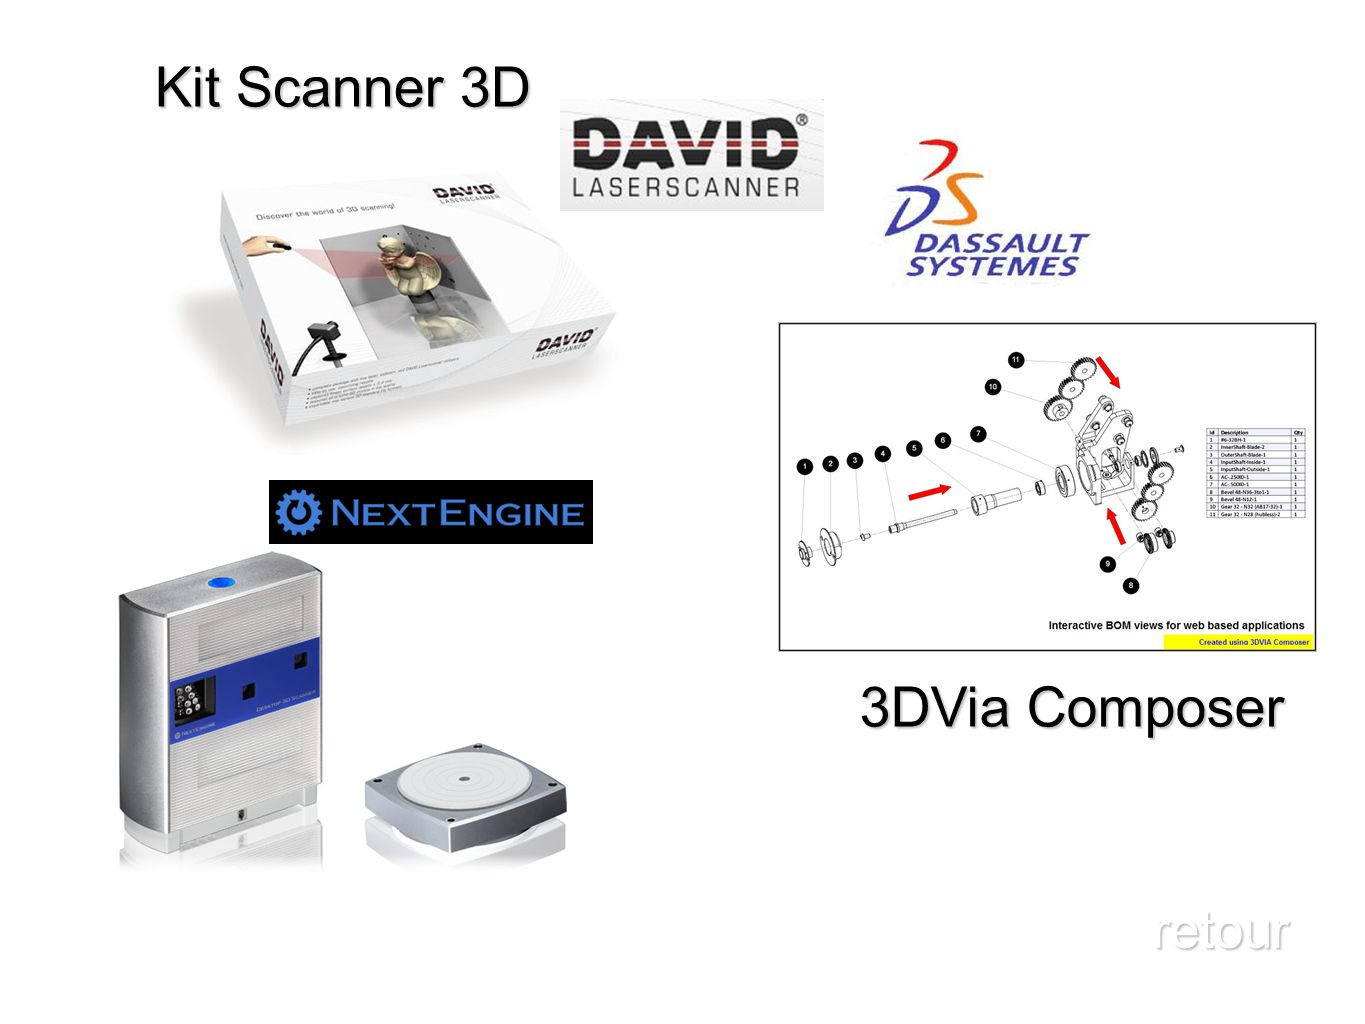 retour 3DVia Composer Kit Scanner 3D